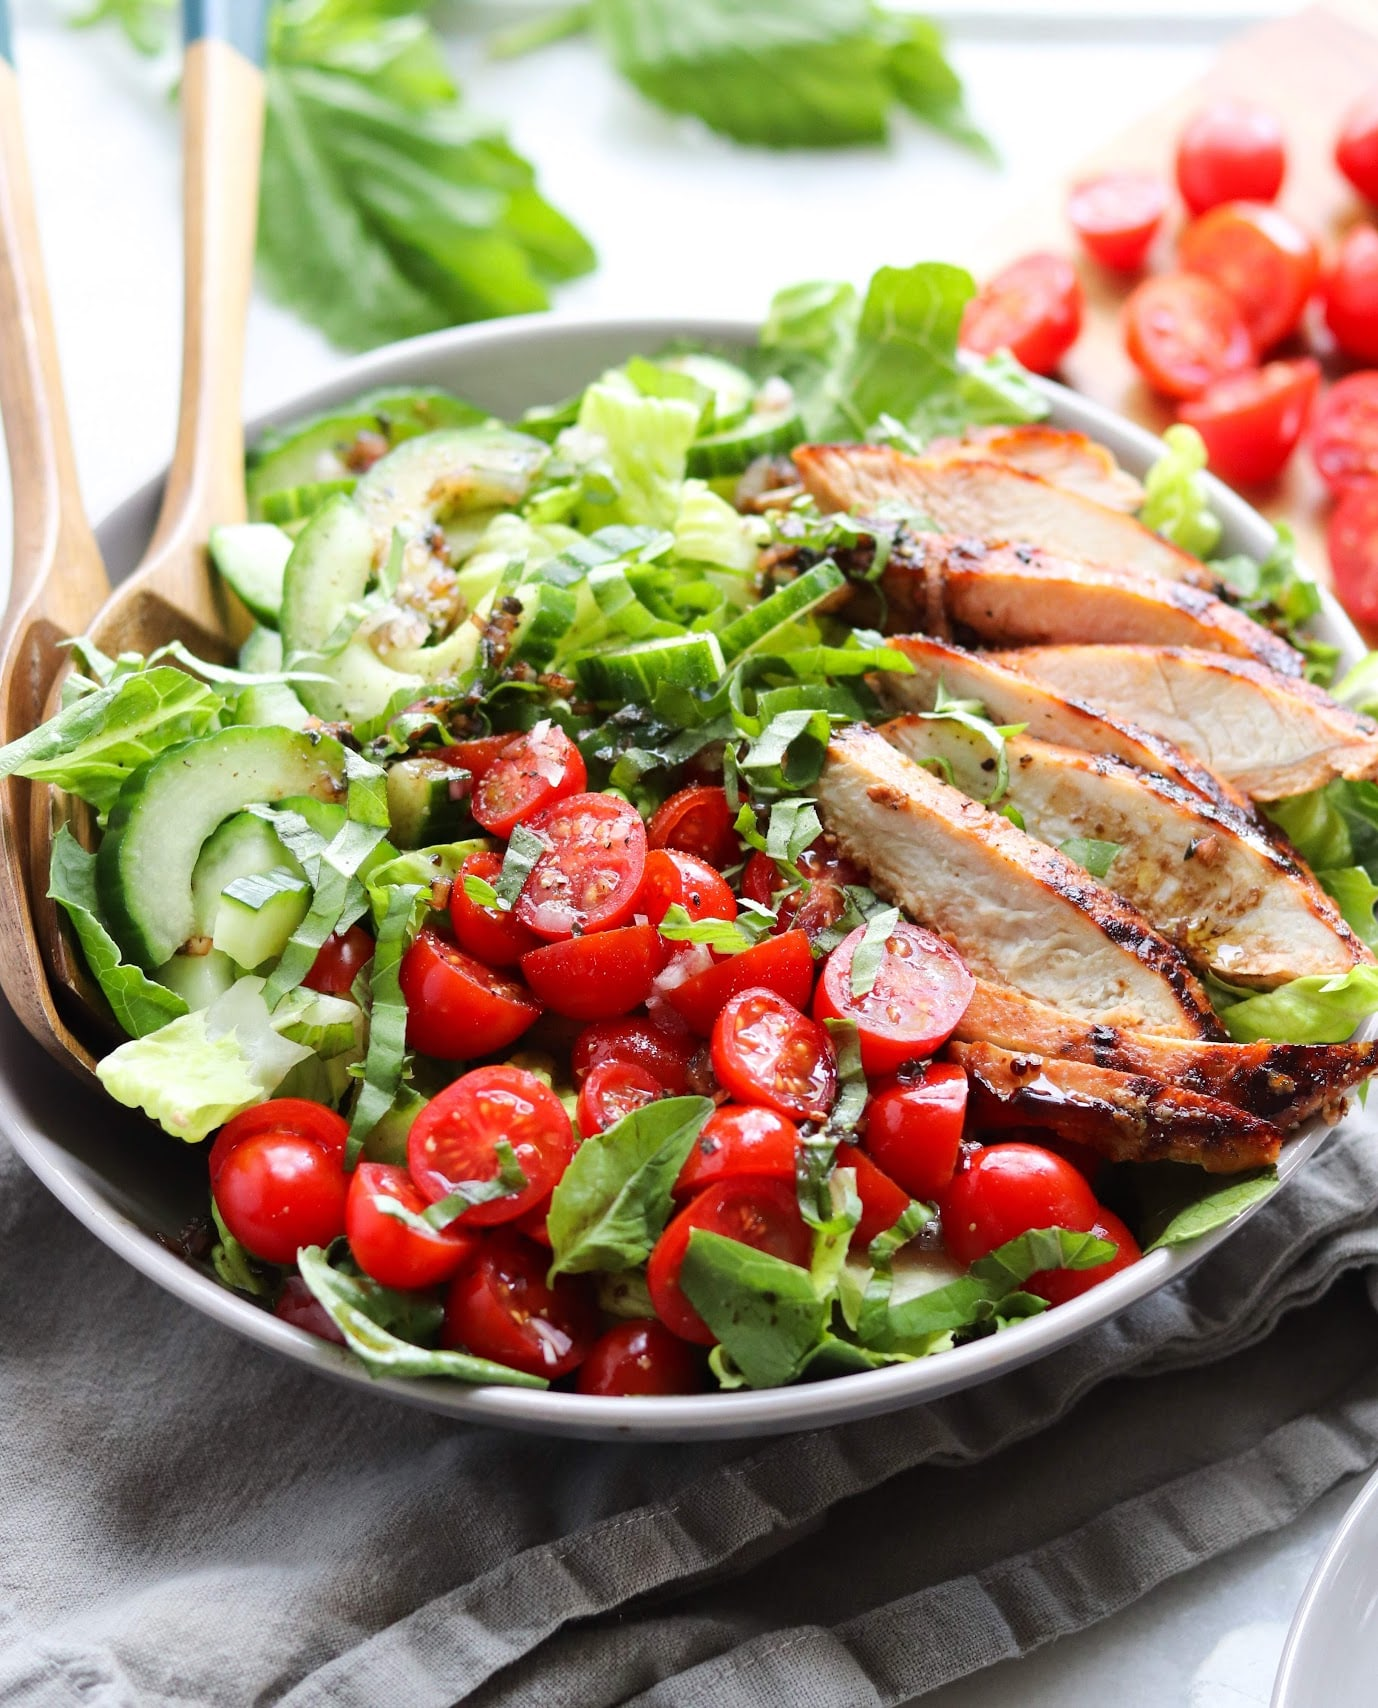 A gray bowl filled to the brim with chopped romaine lettuce, sliced grilled tomato-basil marinated turkey breasts, fresh cherry tomatoes, and sliced cucumbers. Two large wooden serving spoons are in the dish, ready to mix and serve the salad!